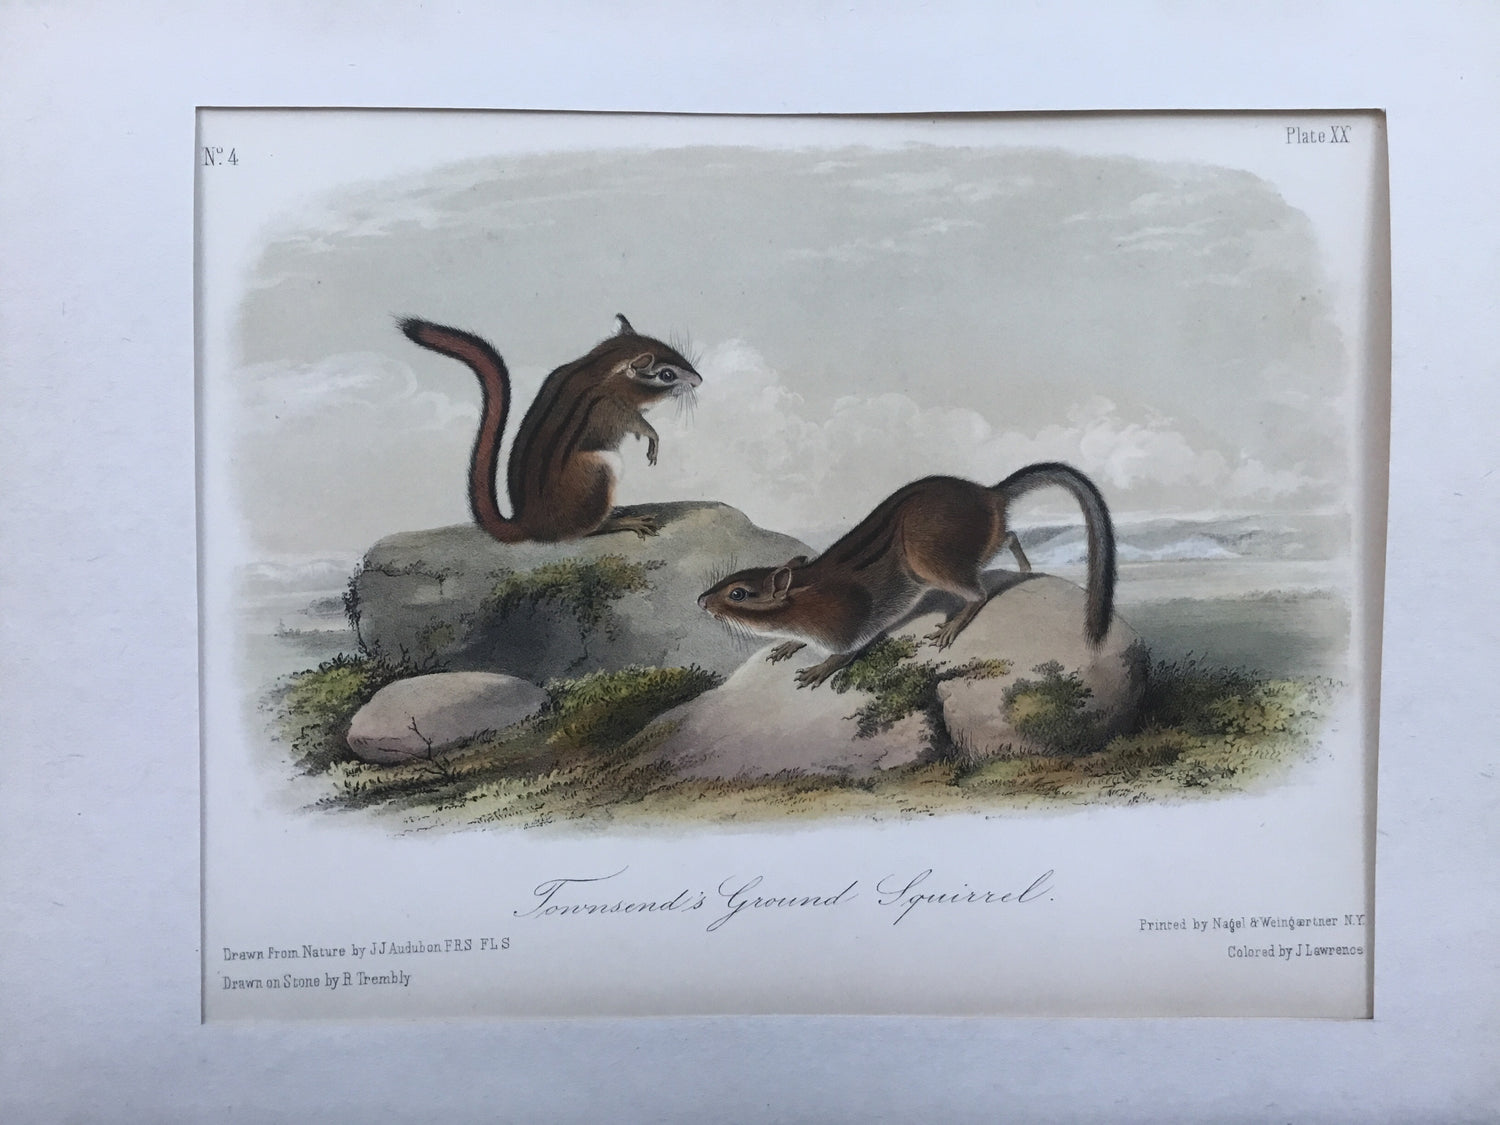 Audubon Original Octavo Quadruped 20, Townsend's Ground Squirrel